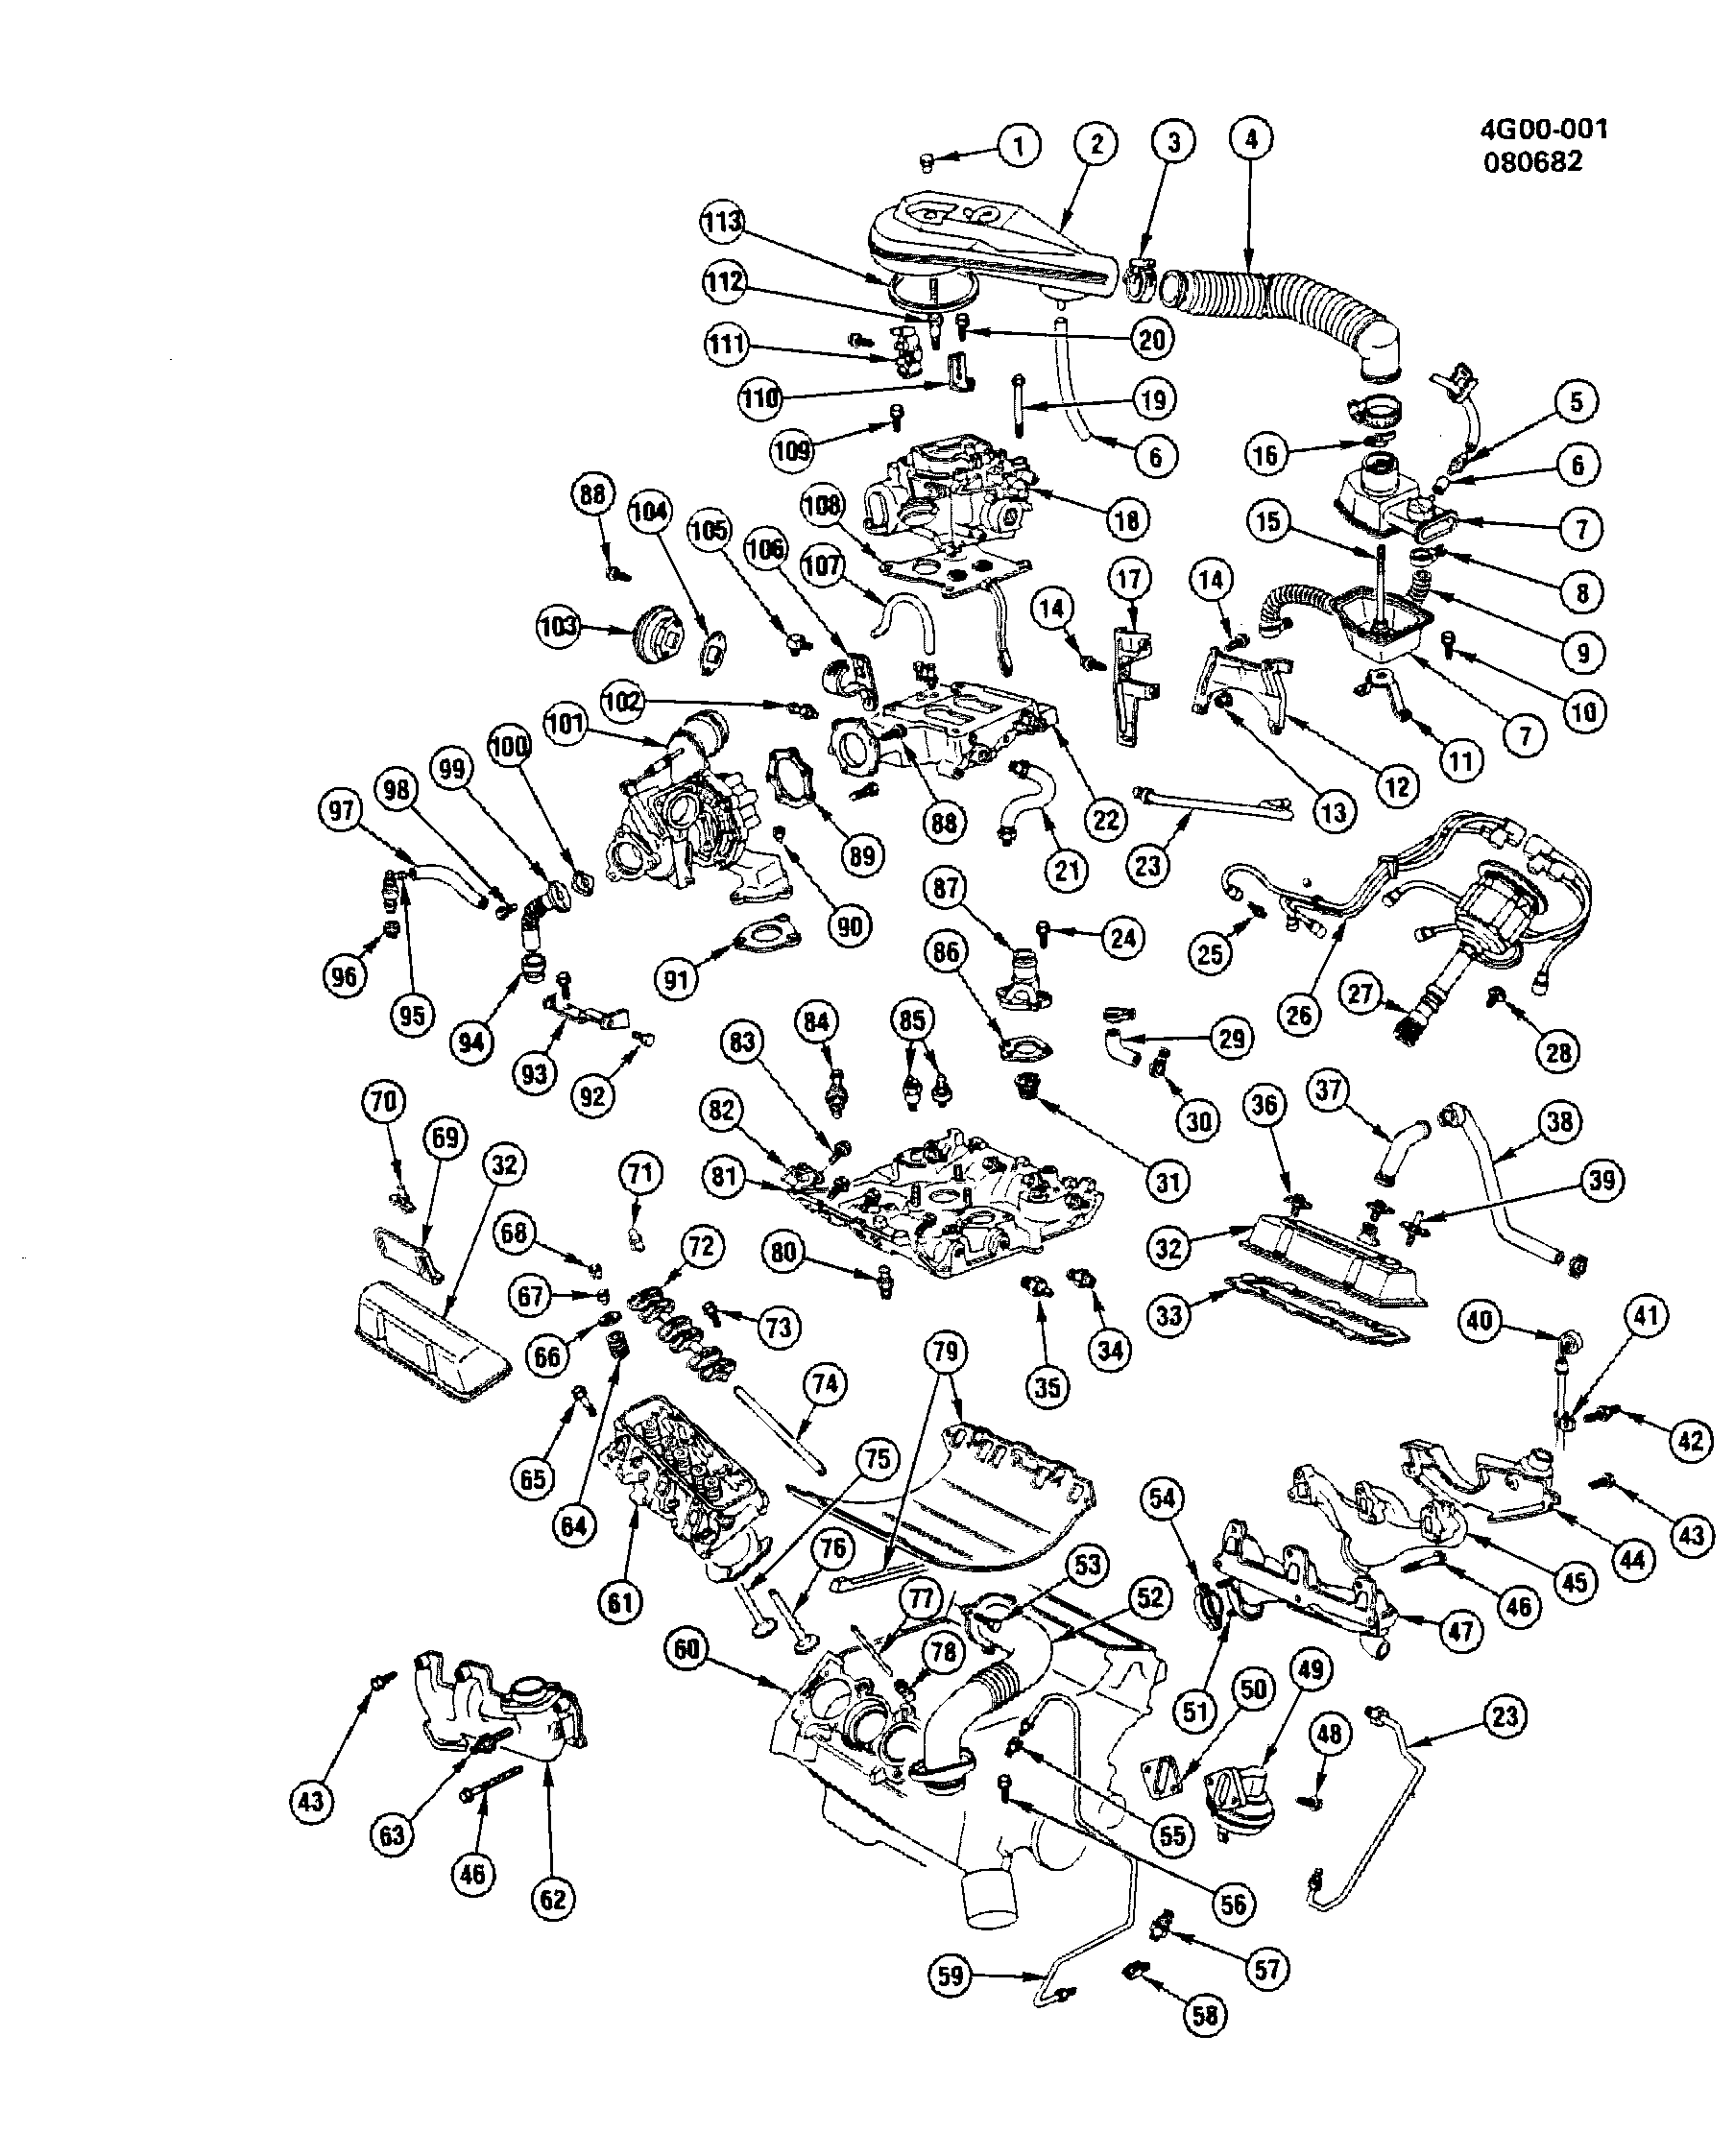 buick regal - g engine asm-3.8l v6 part 2 (lc8/231-3,8 ... buick v6 engine diagram